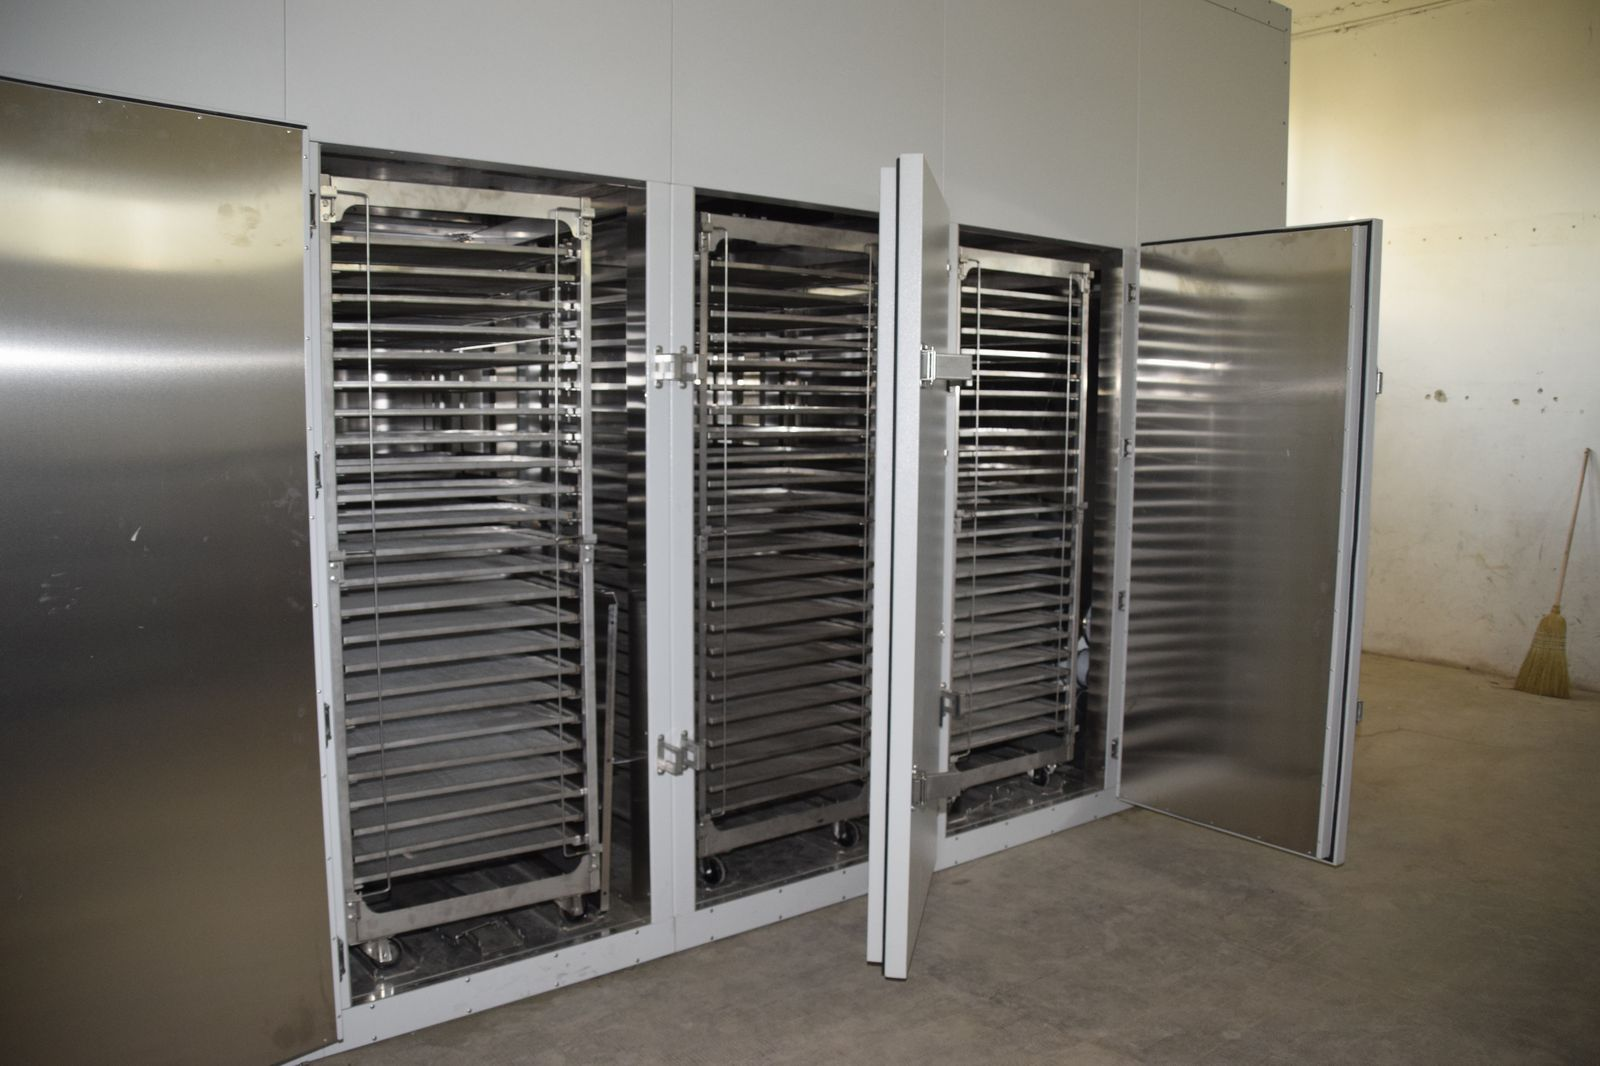 Fruit and vegetable dehydrators with doors open model FD-1x3